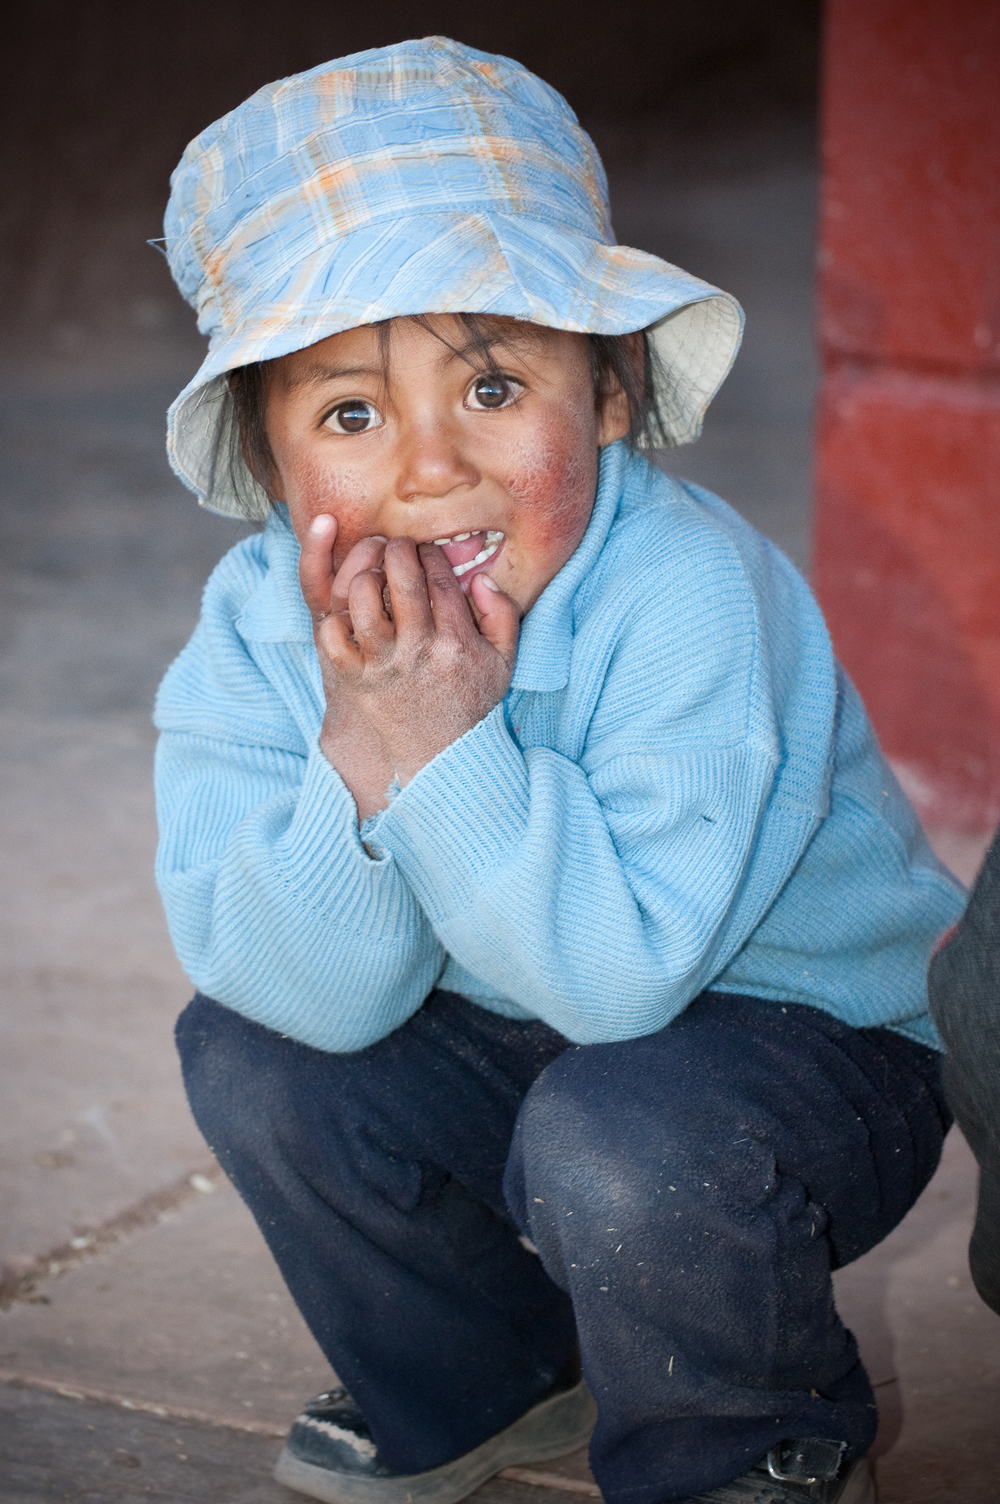 Peru - The Mission Society